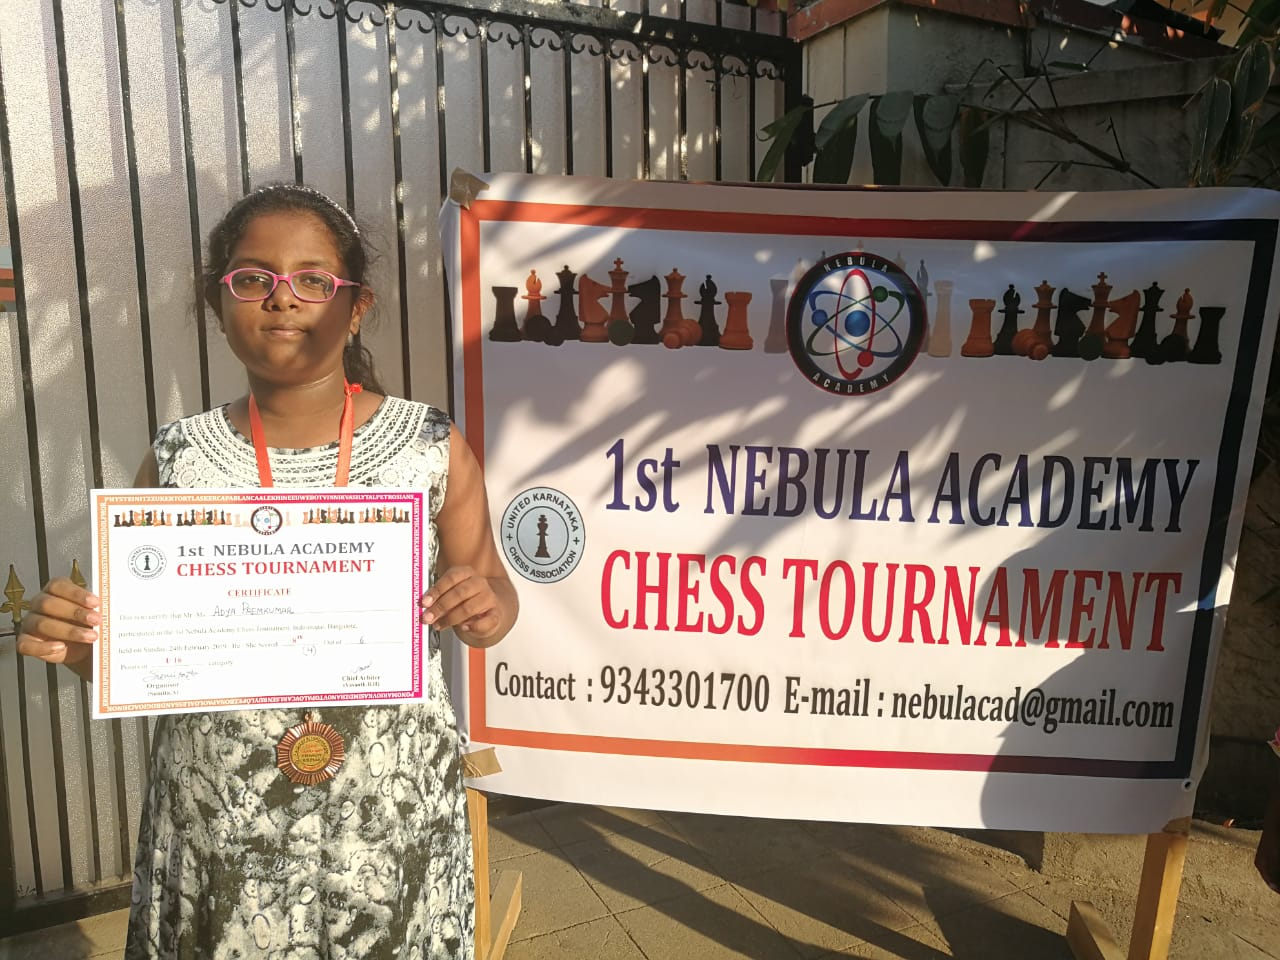 Congratulations to Adya Premkumar for securing 8th place in the 1st Nebula Academy Chess Tournament Under 16 Category